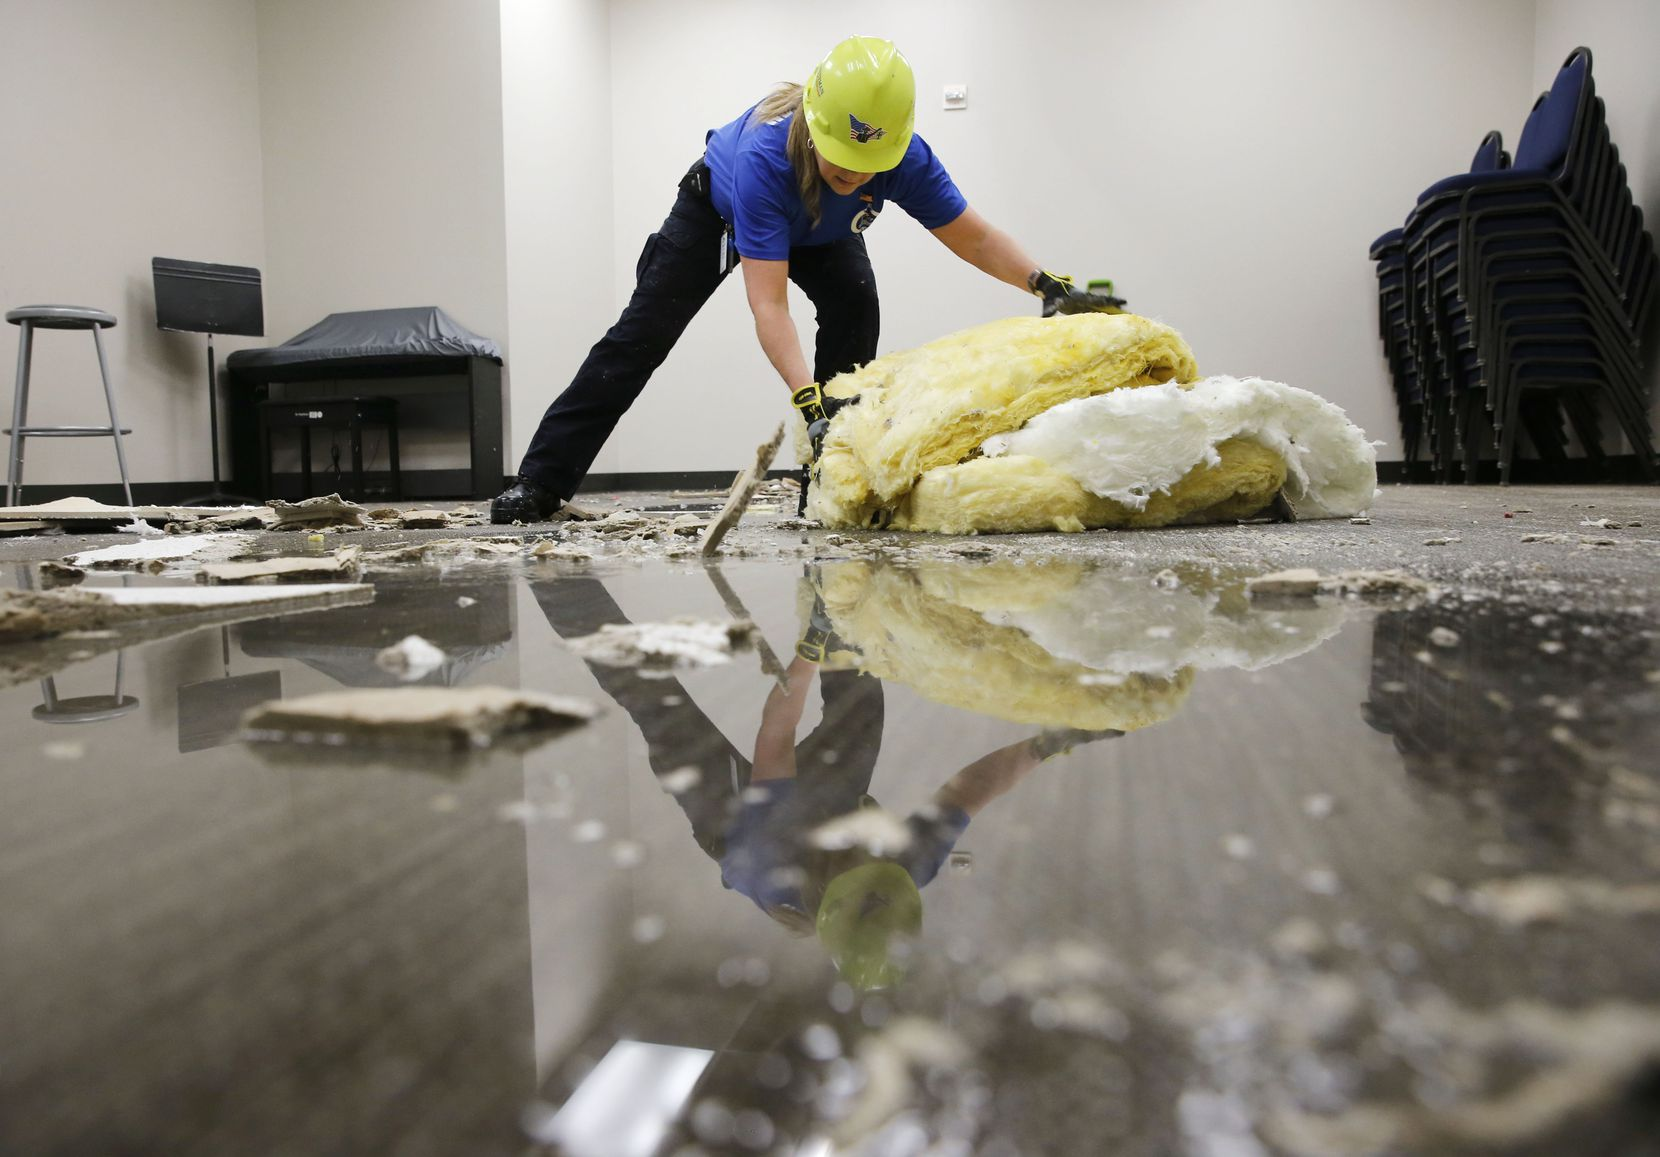 As water pools on the floor, Lisa Martin of Allen, a volunteer with the Minuteman Disaster Response Crew, worked Monday to clean up the student ministry area of Cottonwood Creek Church in Allen.